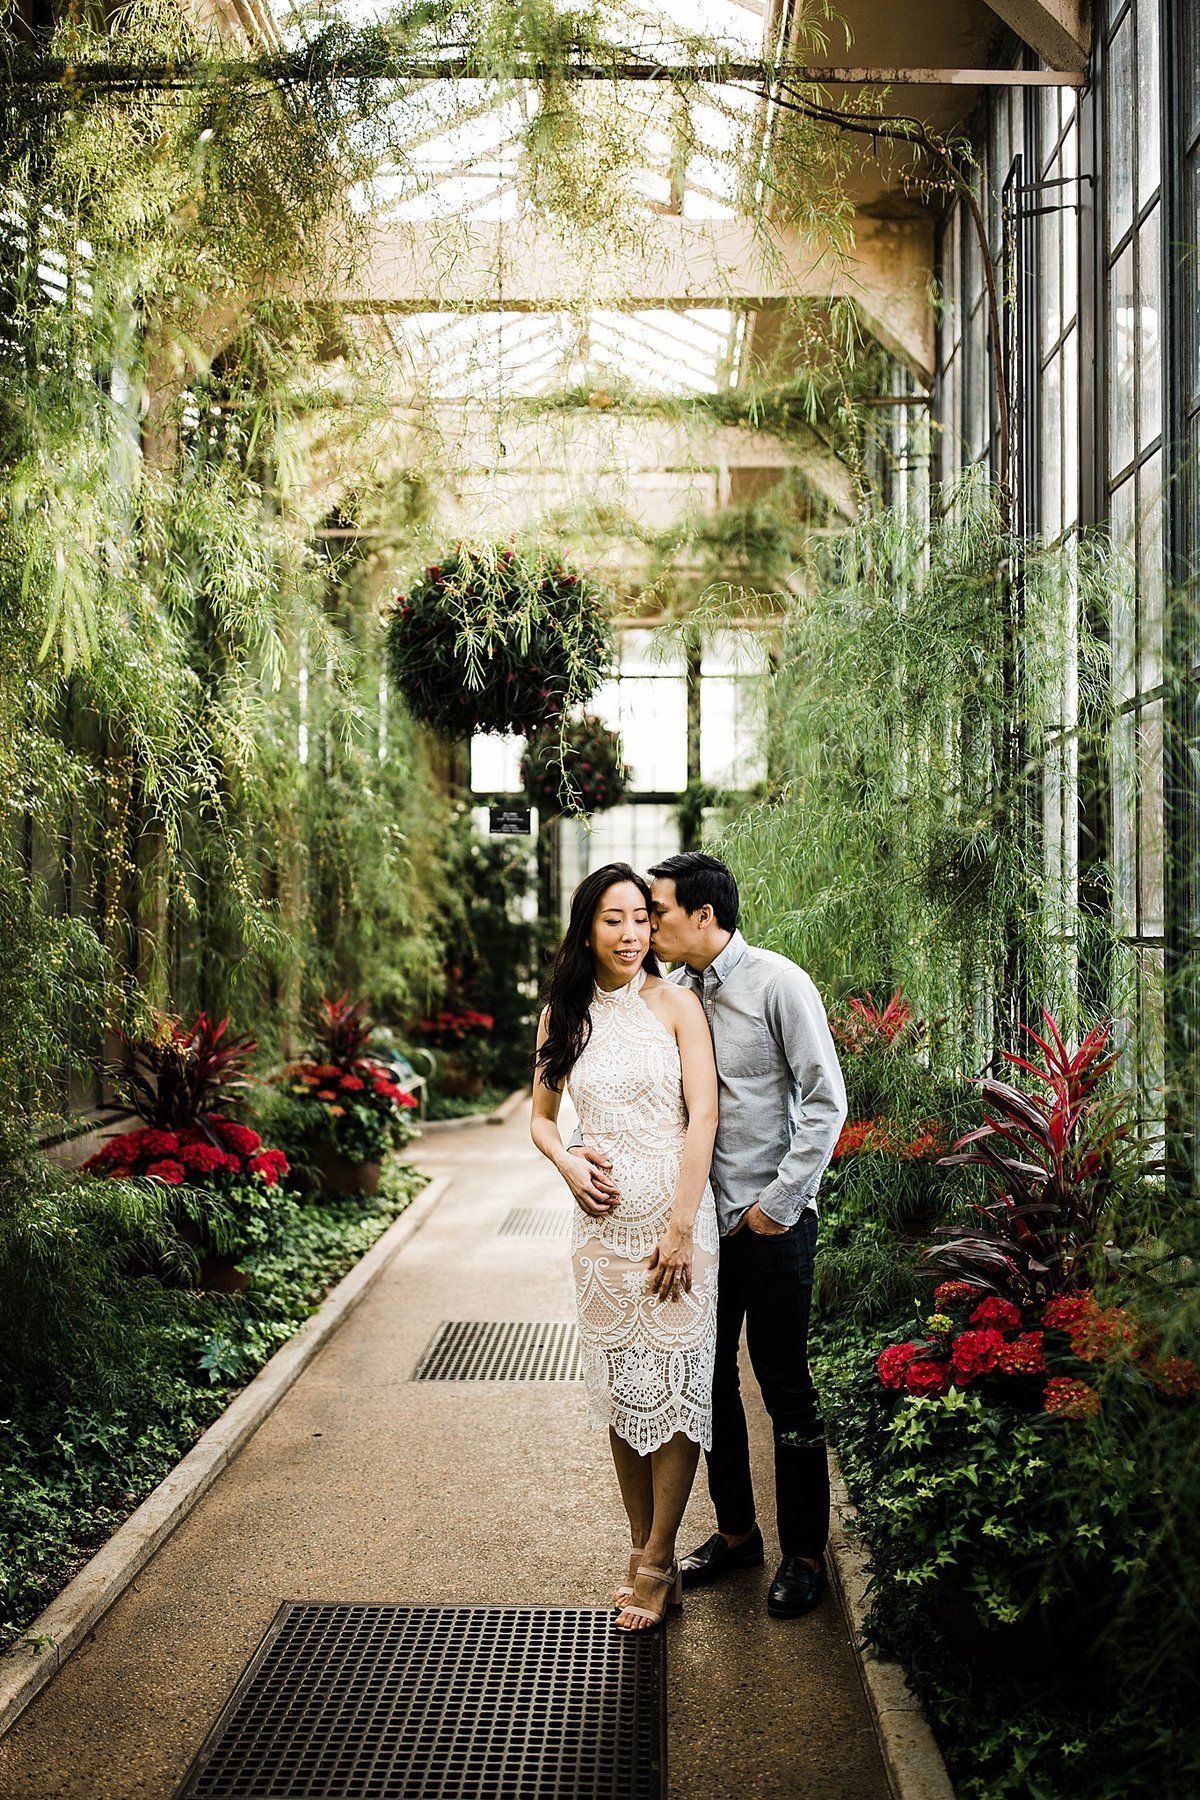 longwood-gardens-engagement-session-rebecca-renner-photography_0020